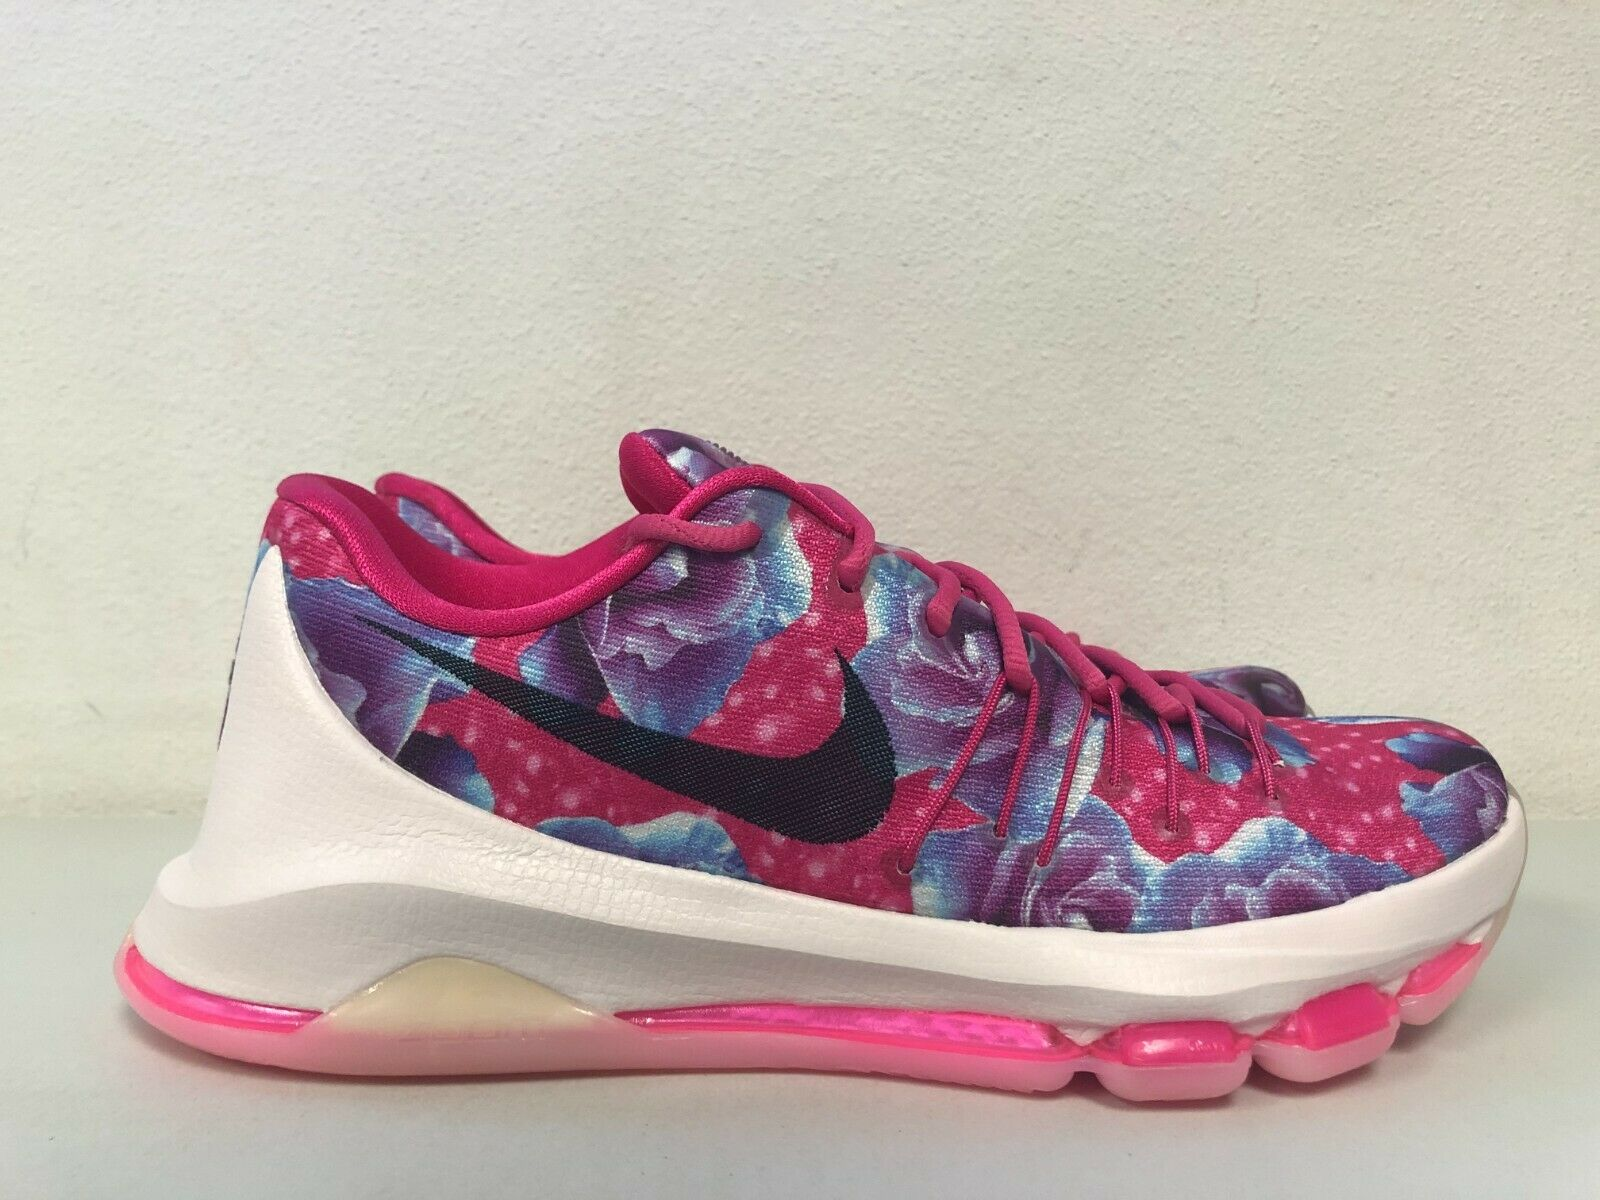 kd 8 aunt pearl